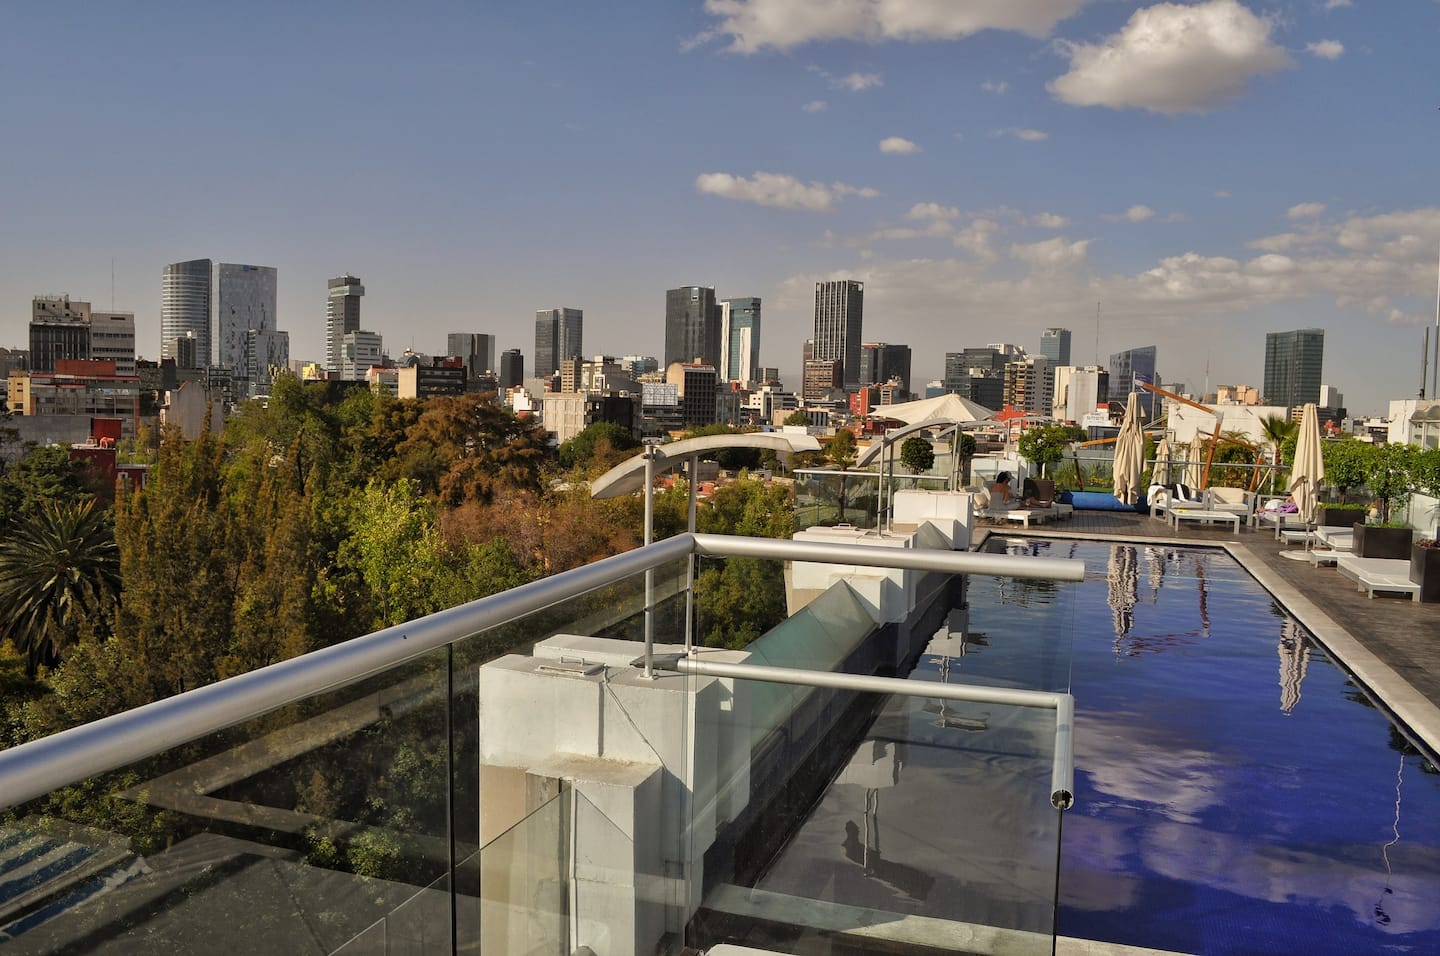 VRBO Mexico City: Rooftop pool overlooking the a large park and the city in the distance